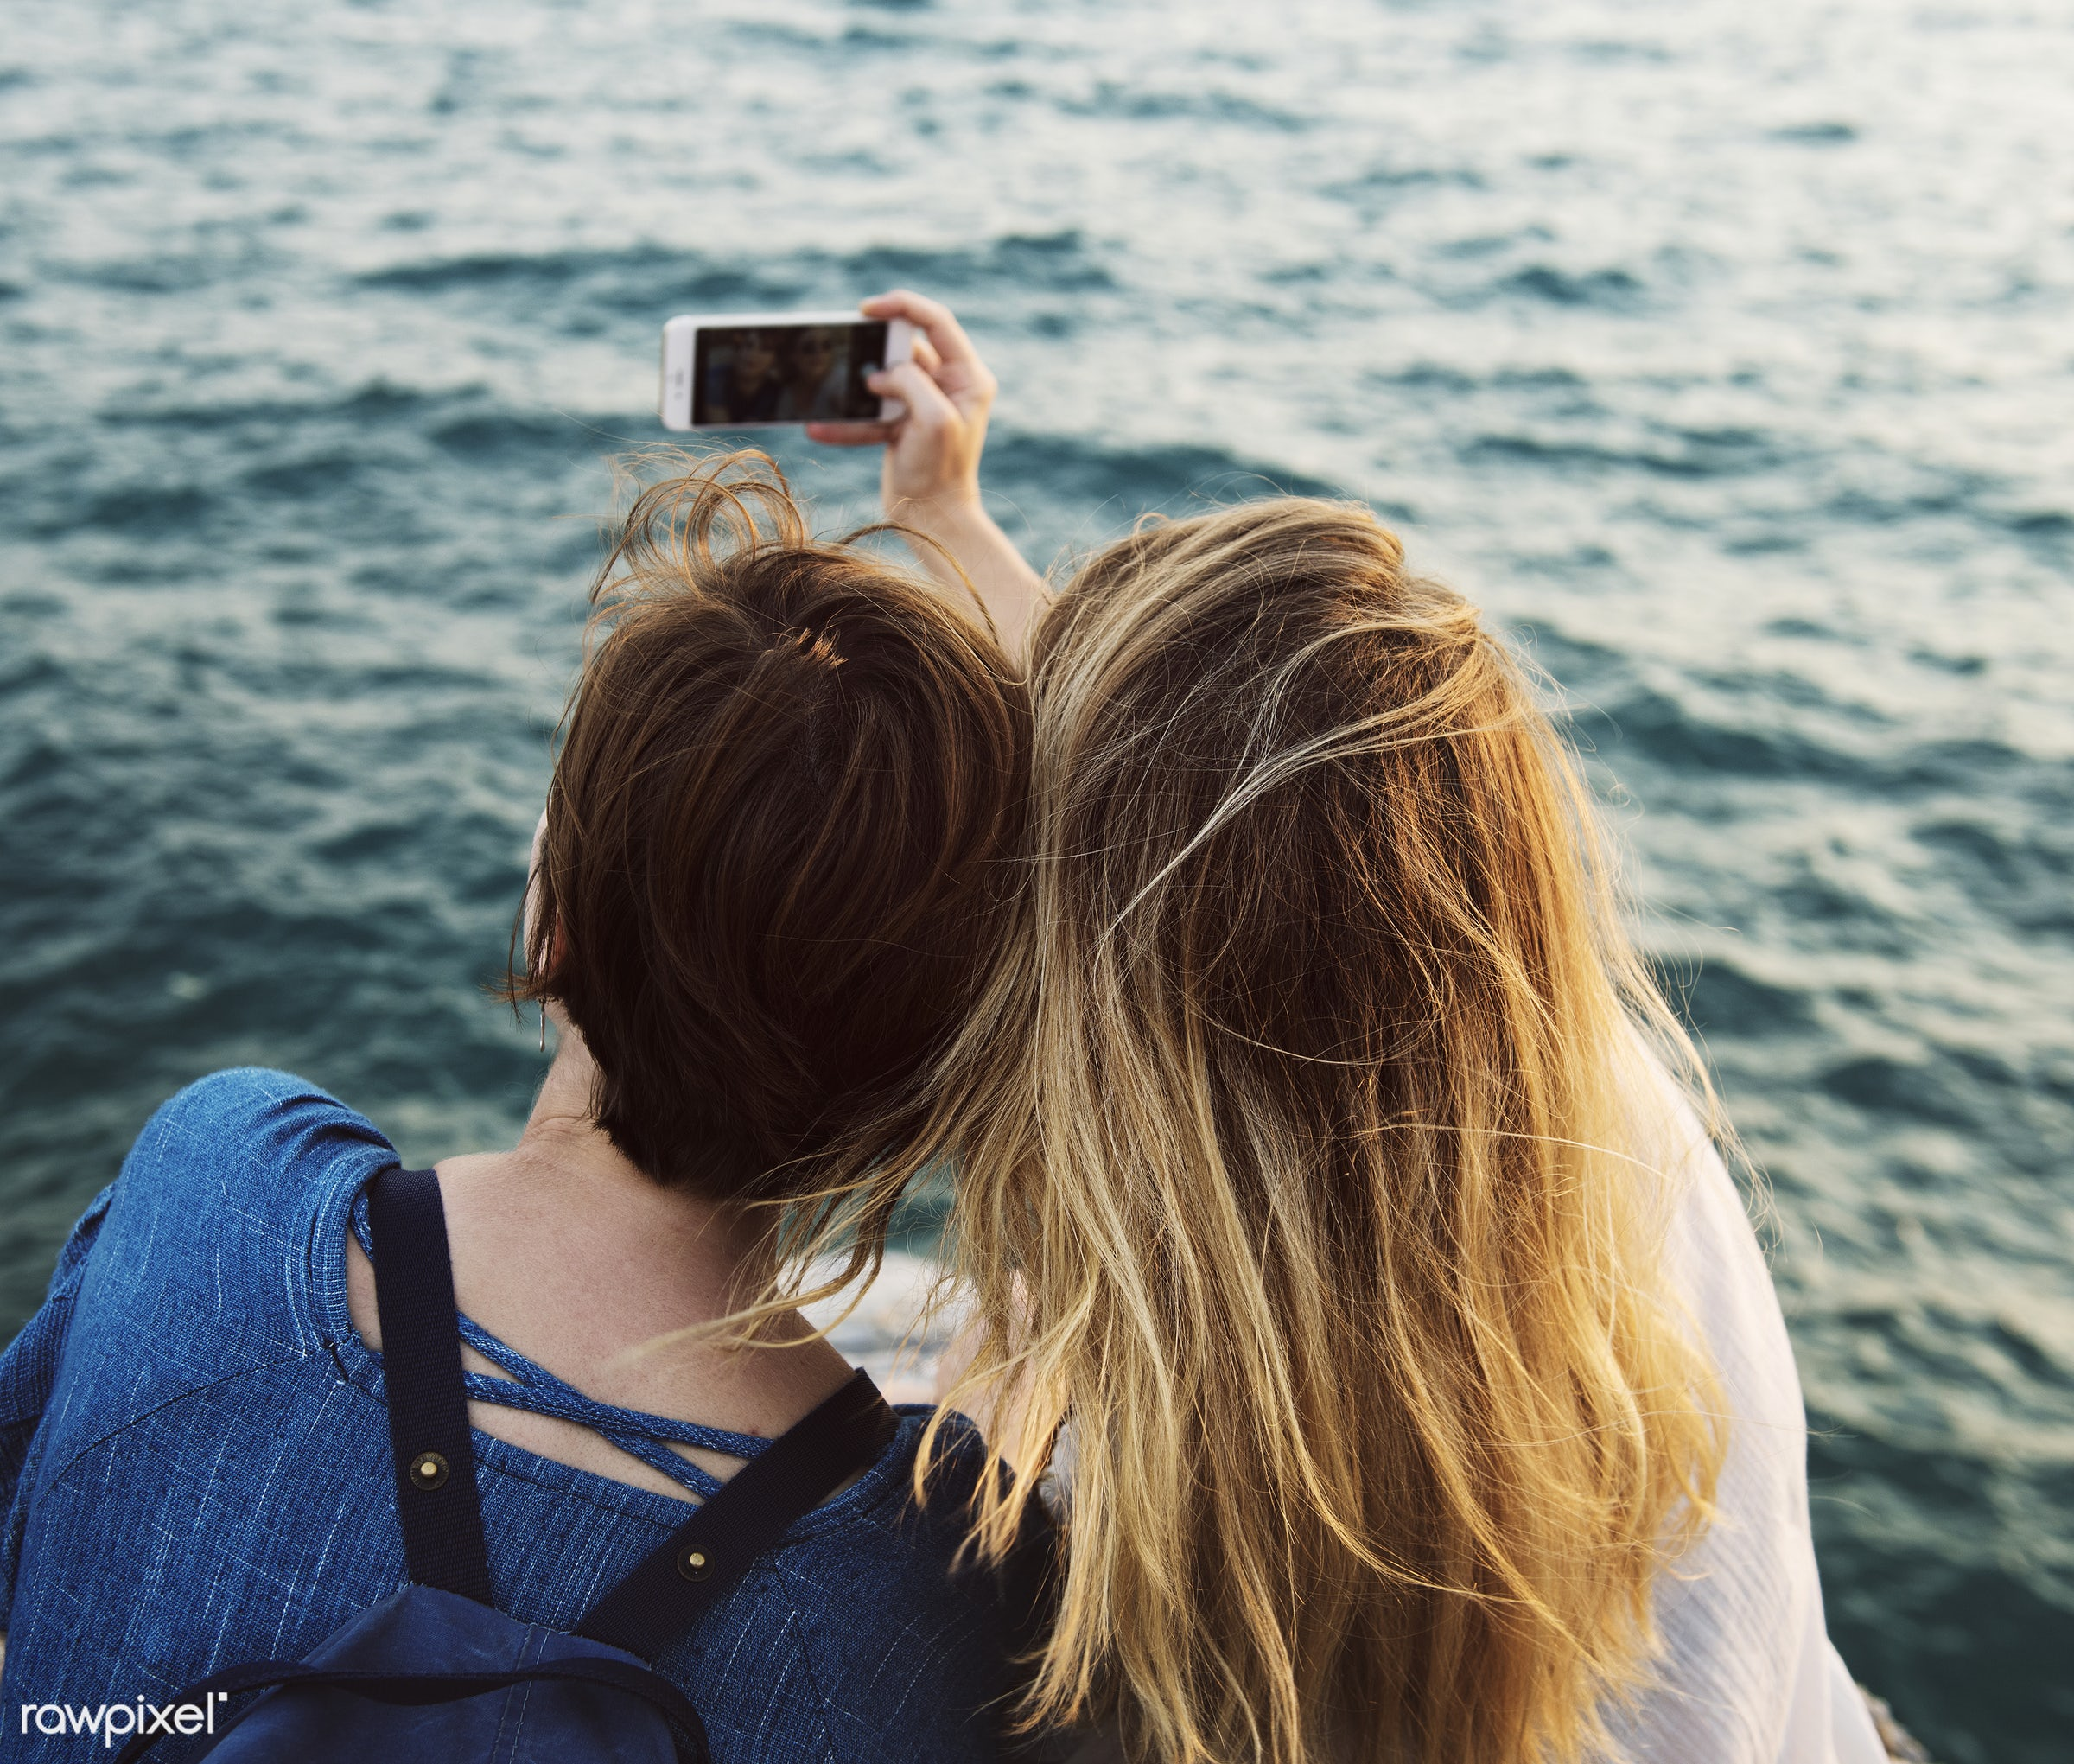 phone, joy, holidays, ocean, travel, carefree, digital, together, caucasian, wanderlust, adventure, friends, travelling,...